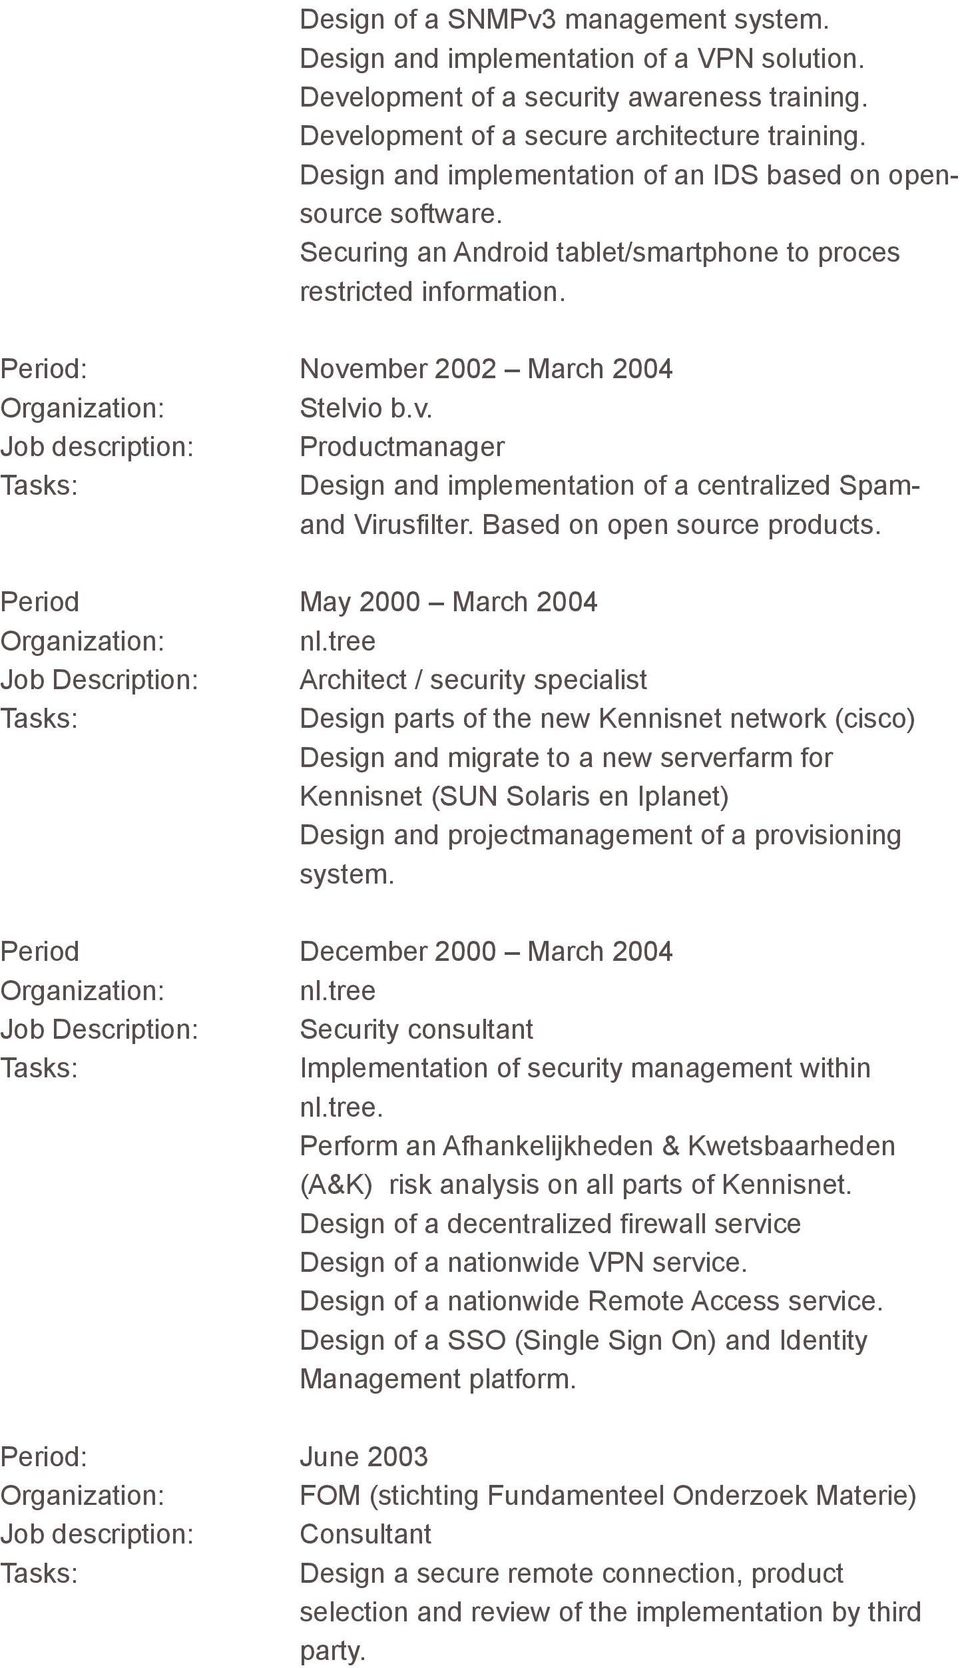 mber 2002 March 2004 Organization: Stelvio b.v. Job description: Productmanager Design and implementation of a centralized Spamand Virusfilter. Based on open source products.